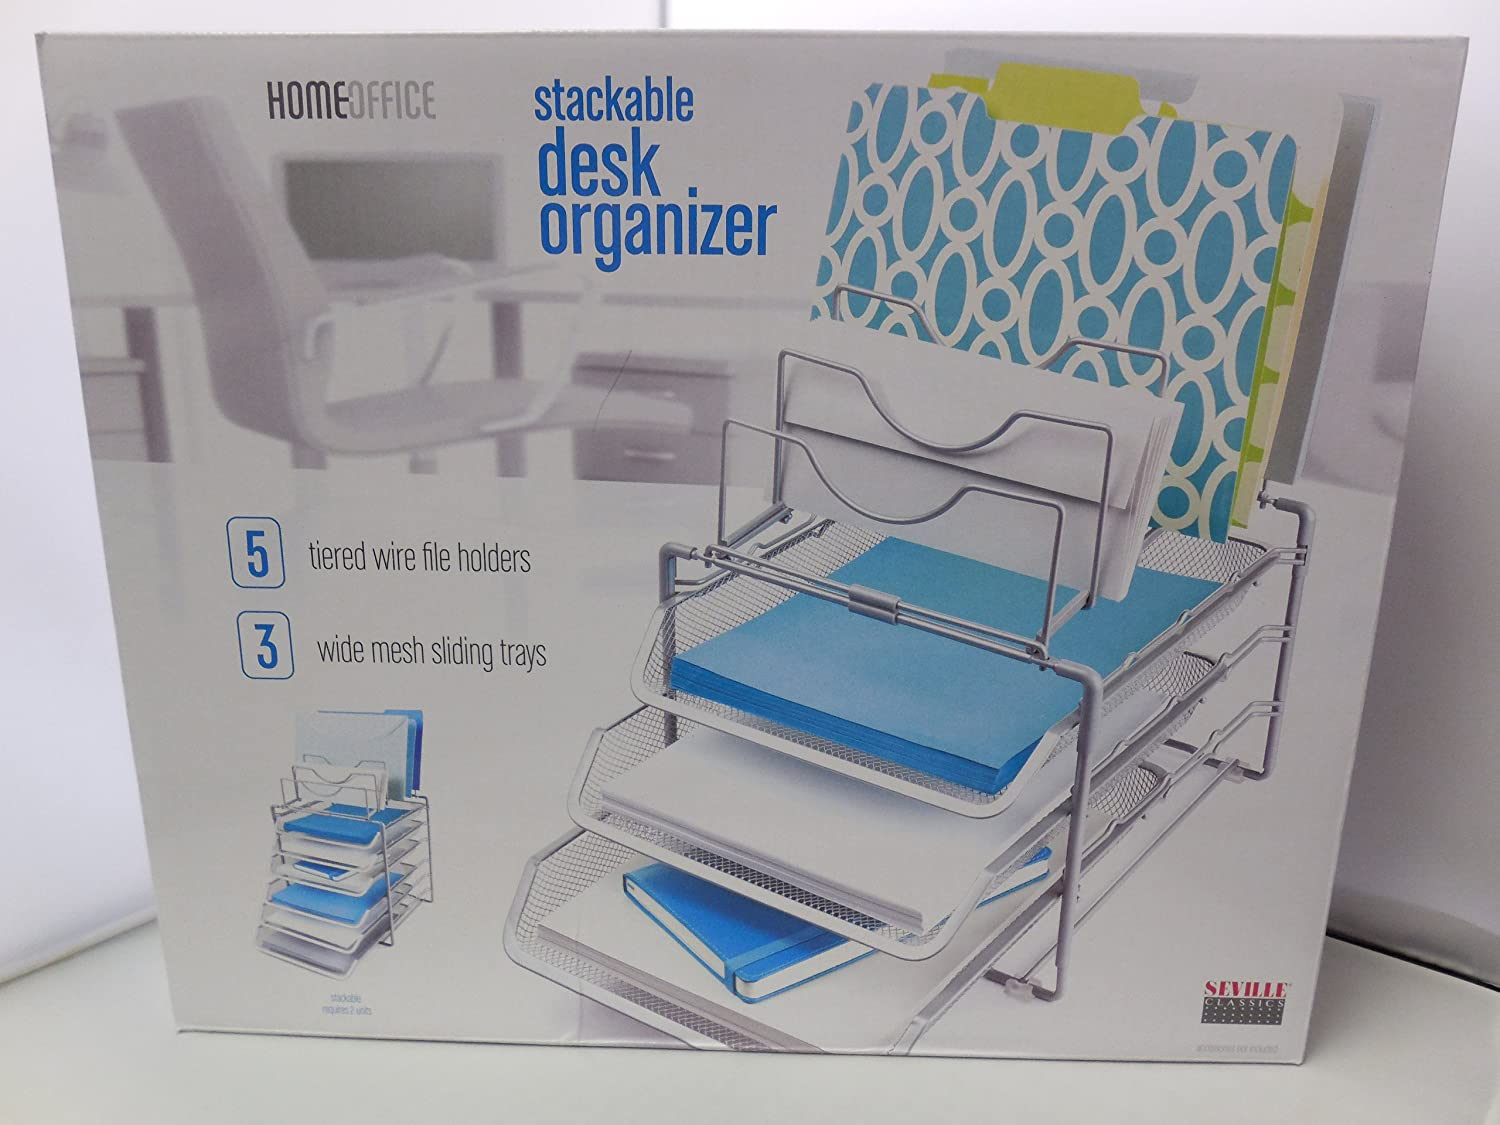 Amazon.com: Seville Classics Home Office Stackable Desk Organizer ...